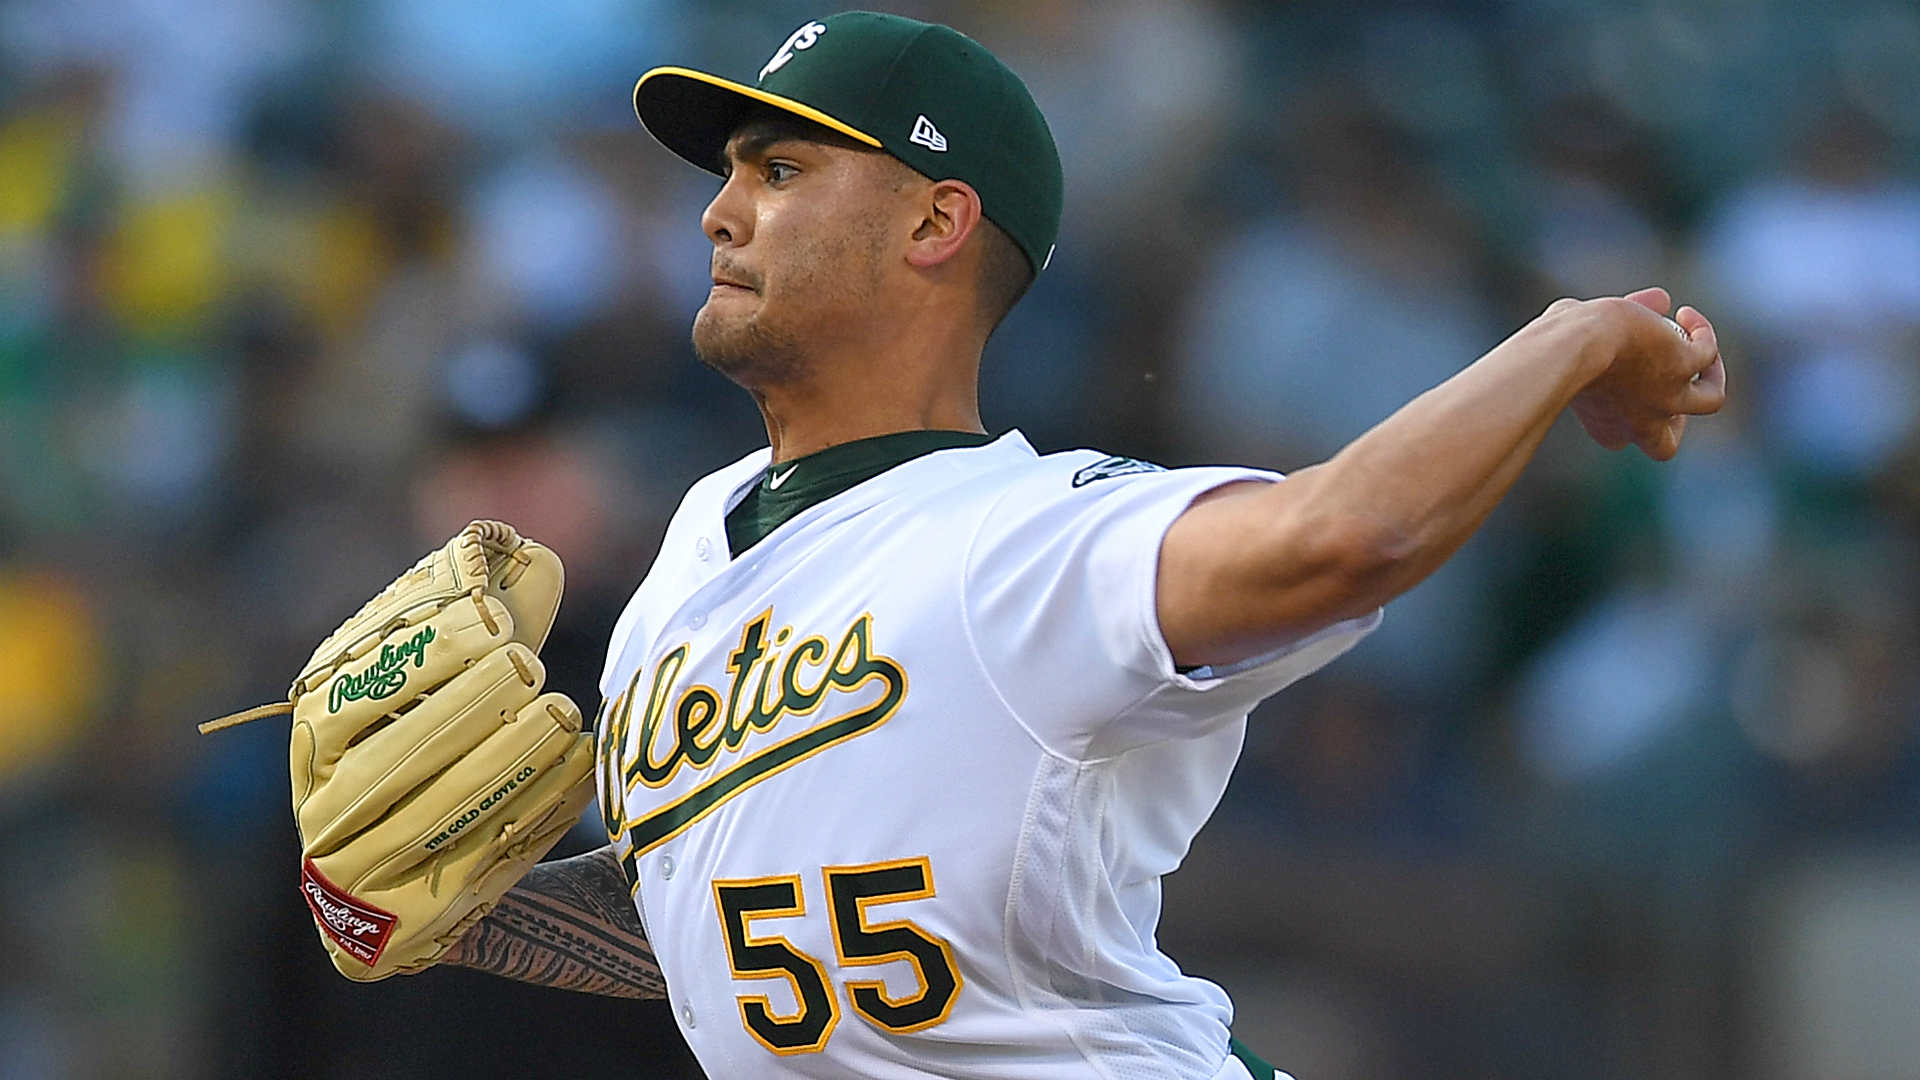 Sean-manaea-042118-getty-ftrjpg_1gm5d8z4fcqon134hv0q7n919a